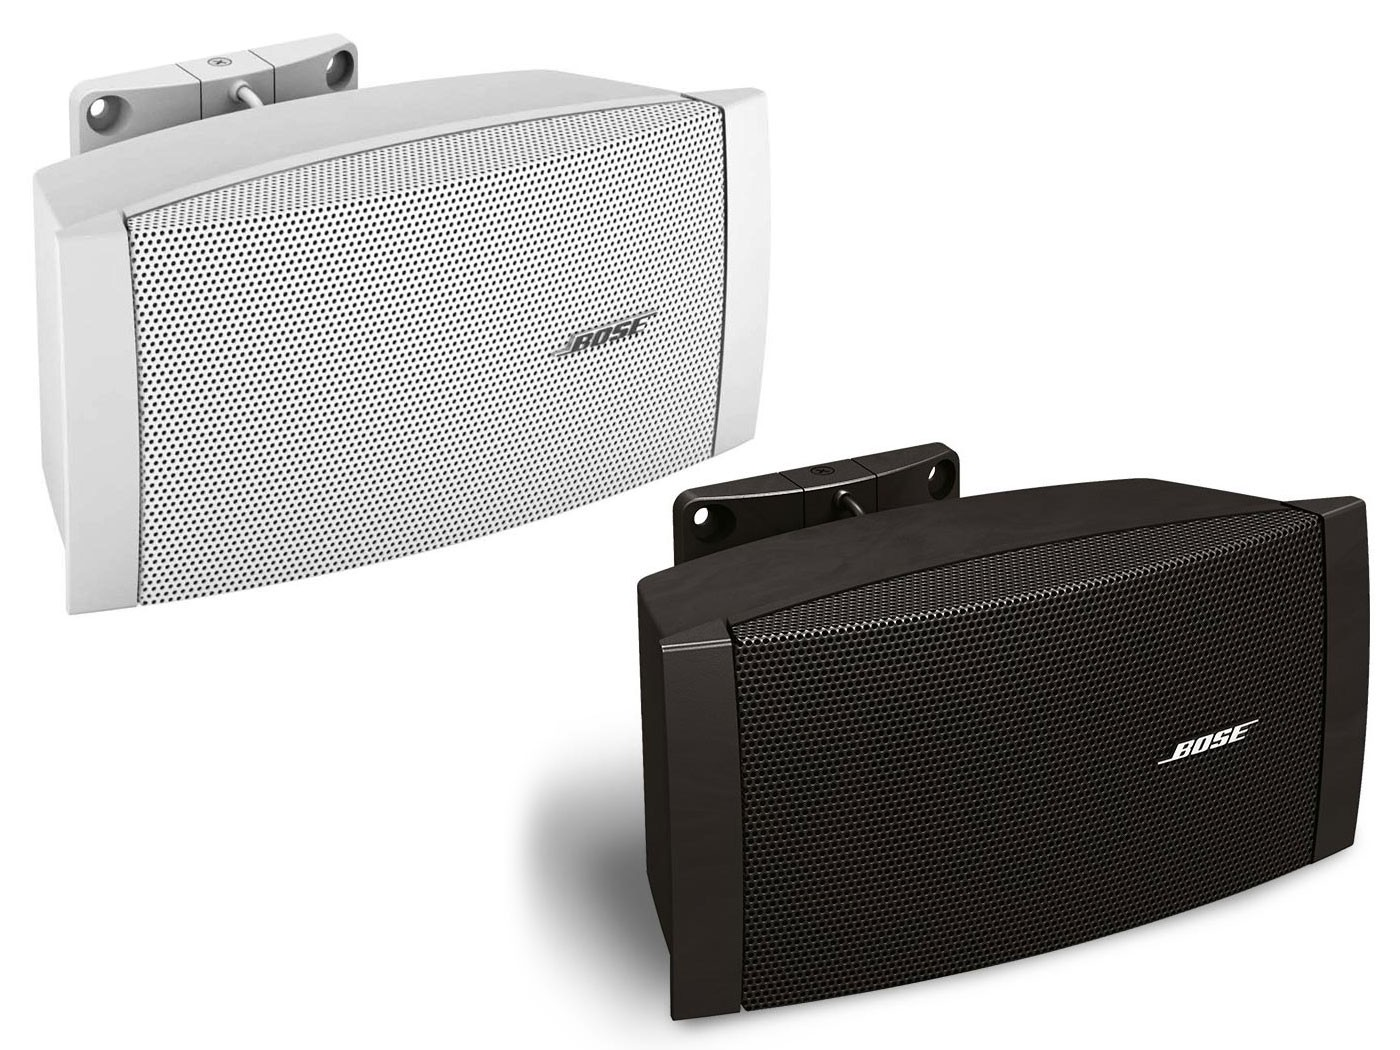 Bose Professional speakers